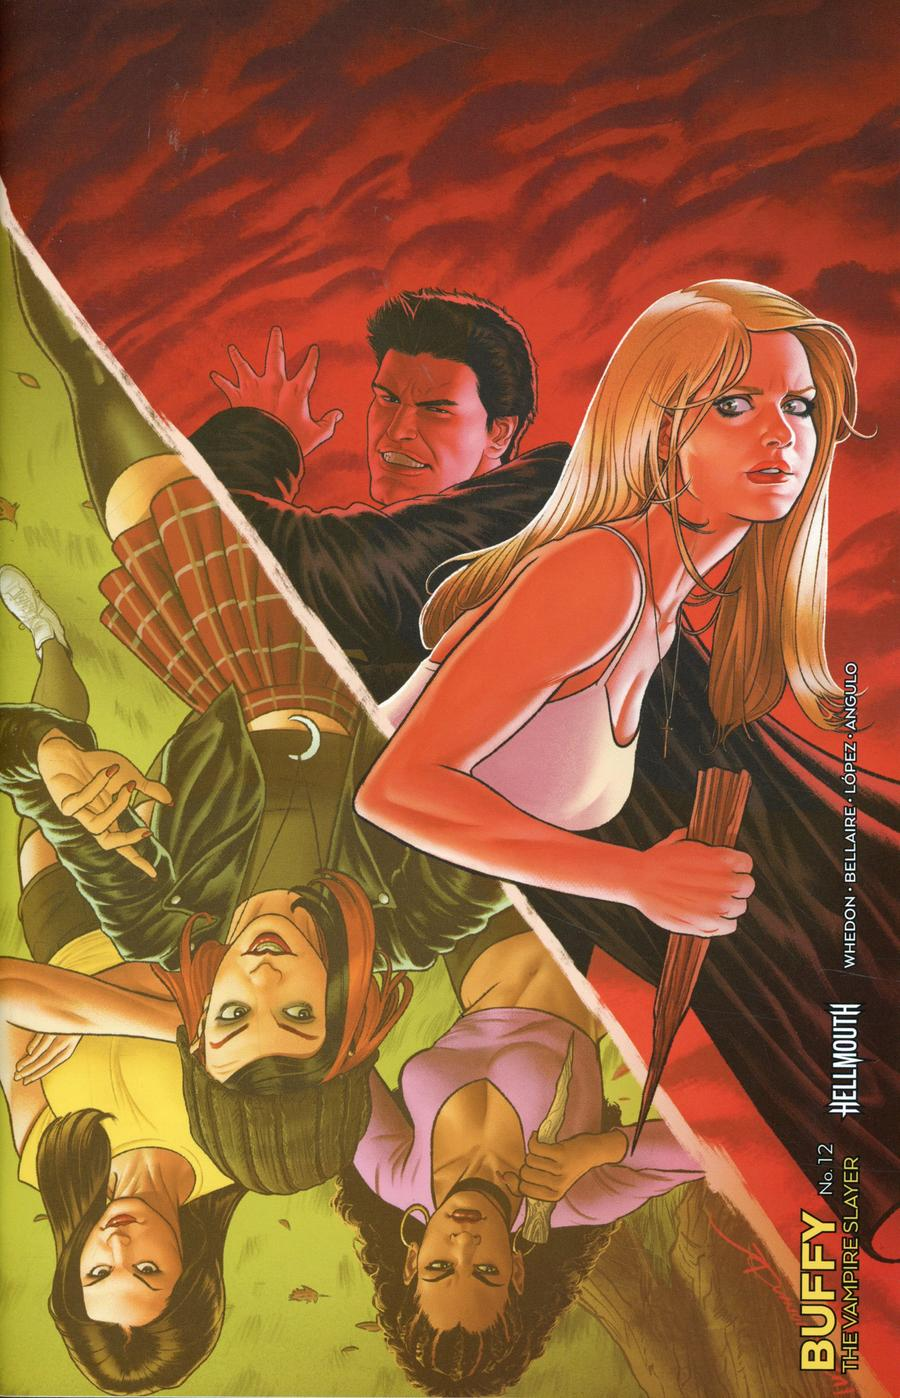 Buffy The Vampire Slayer Vol 2 #12 Cover F Incentive Joe Quinones Variant Cover (Hellmouth Tie-In)